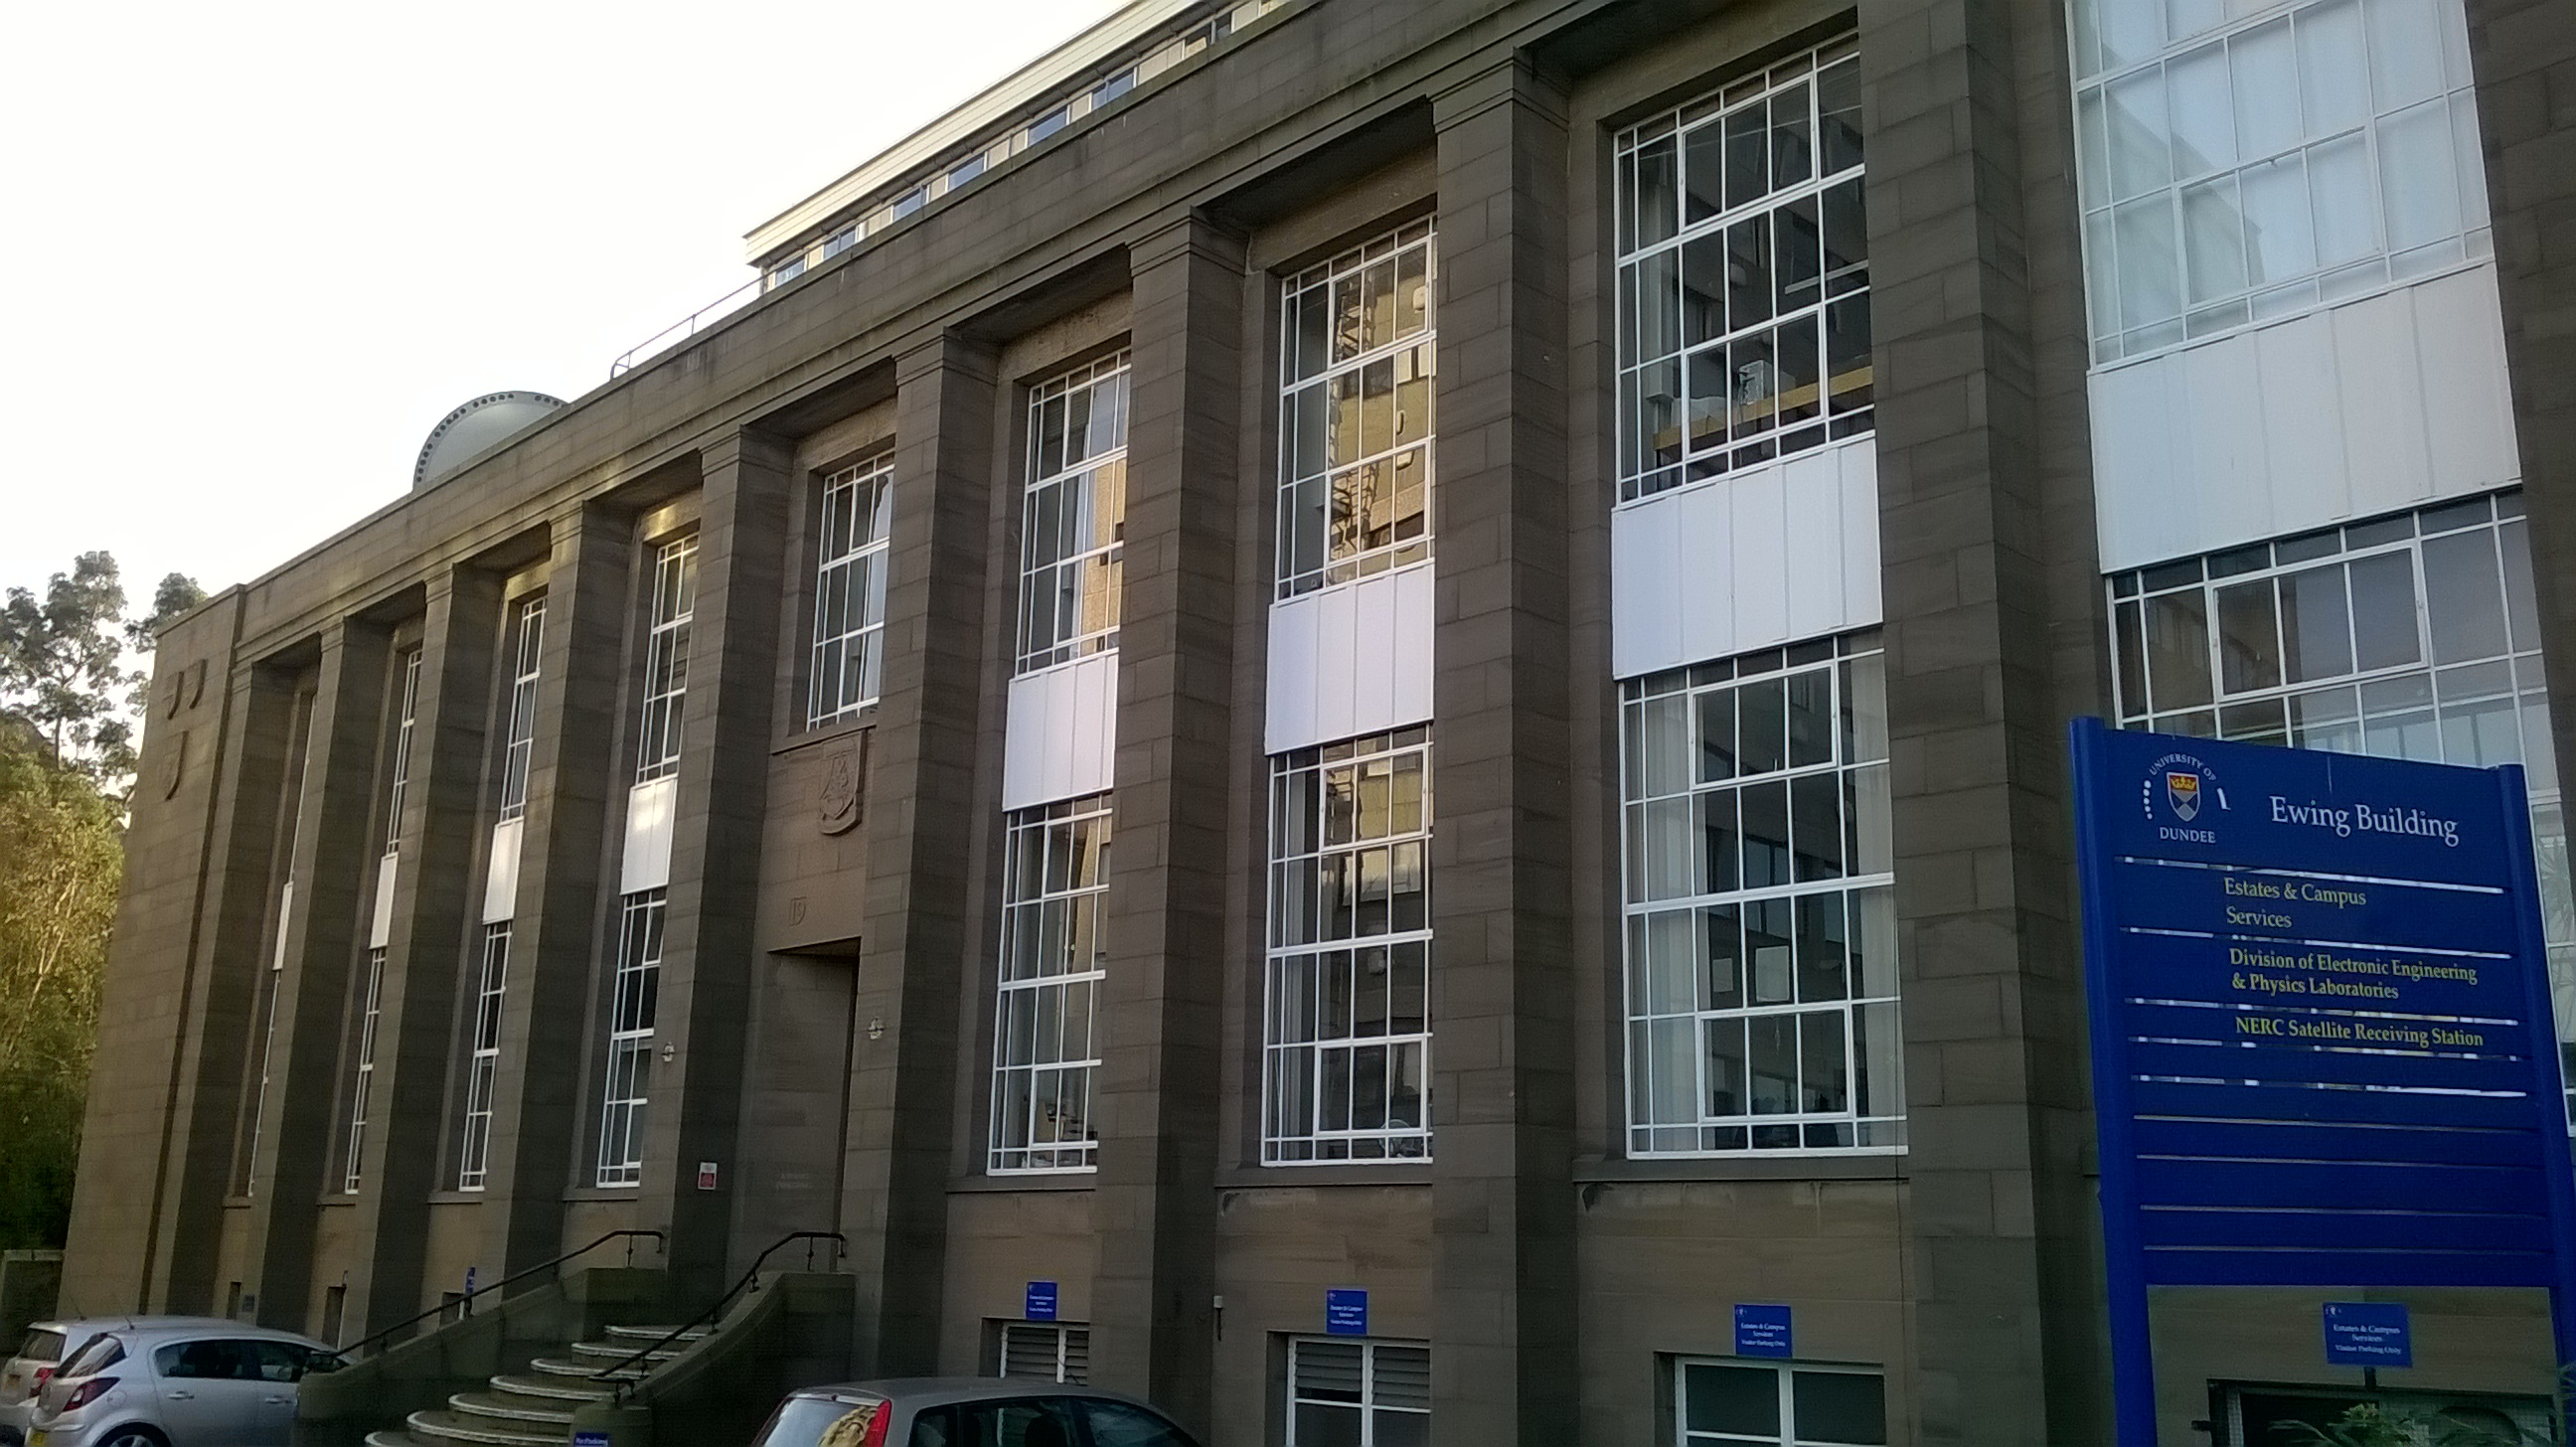 Ewing Building Dundee University